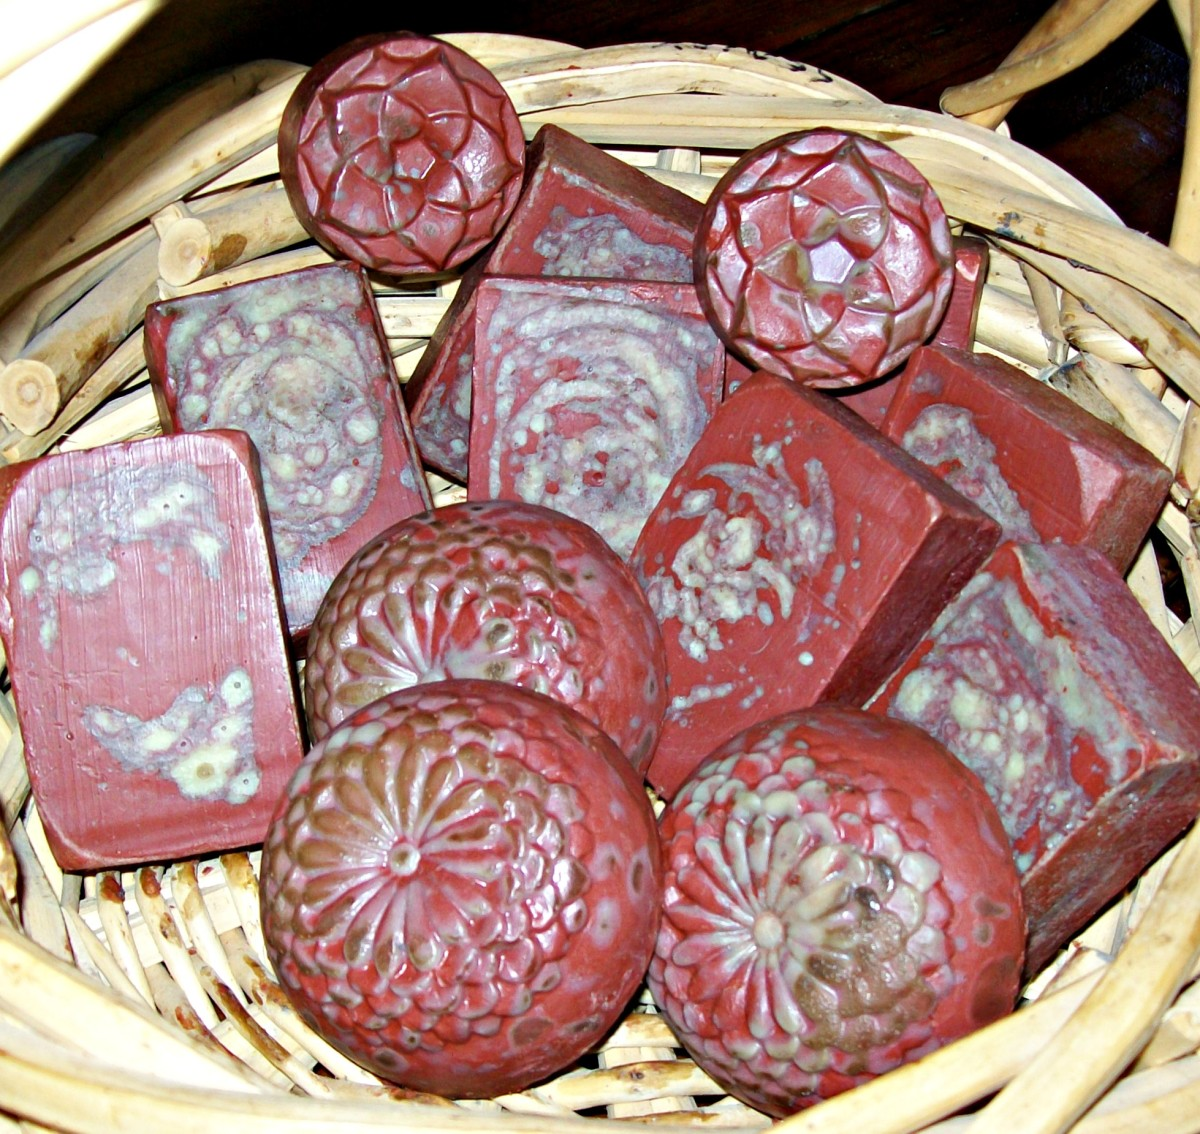 Dragon's Blood Soap showing some browning after a few days. The gradual browning--and even the disappearance of some soap colorants--is an effect of the high vanillan content of the Dragon's Blood fragrance oil.